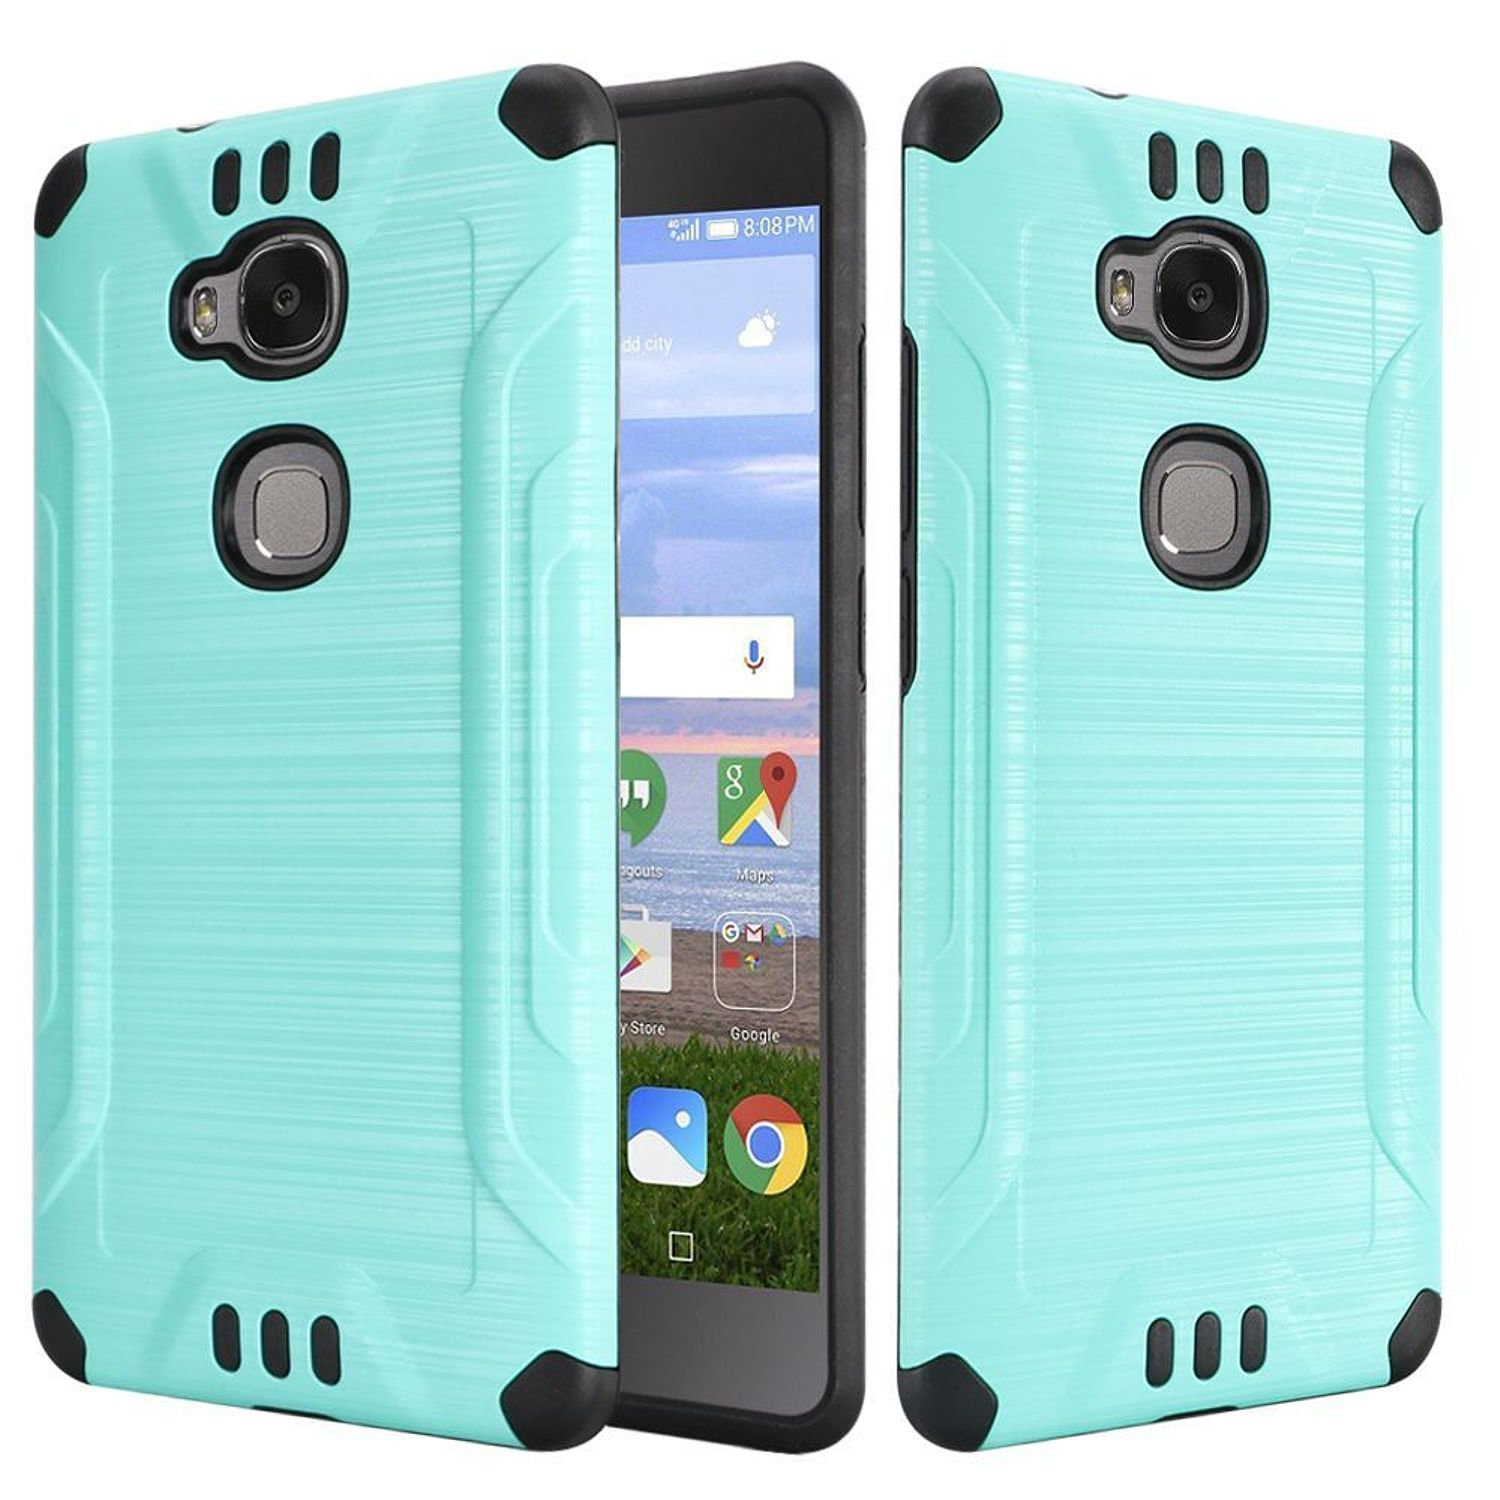 Huawei Sensa LTE Case, by HR Wireless Dual Layer Hybrid Rubberized Hard Plastic/Soft Silicone Case Cover For Huawei Sensa LTE, Teal/Black